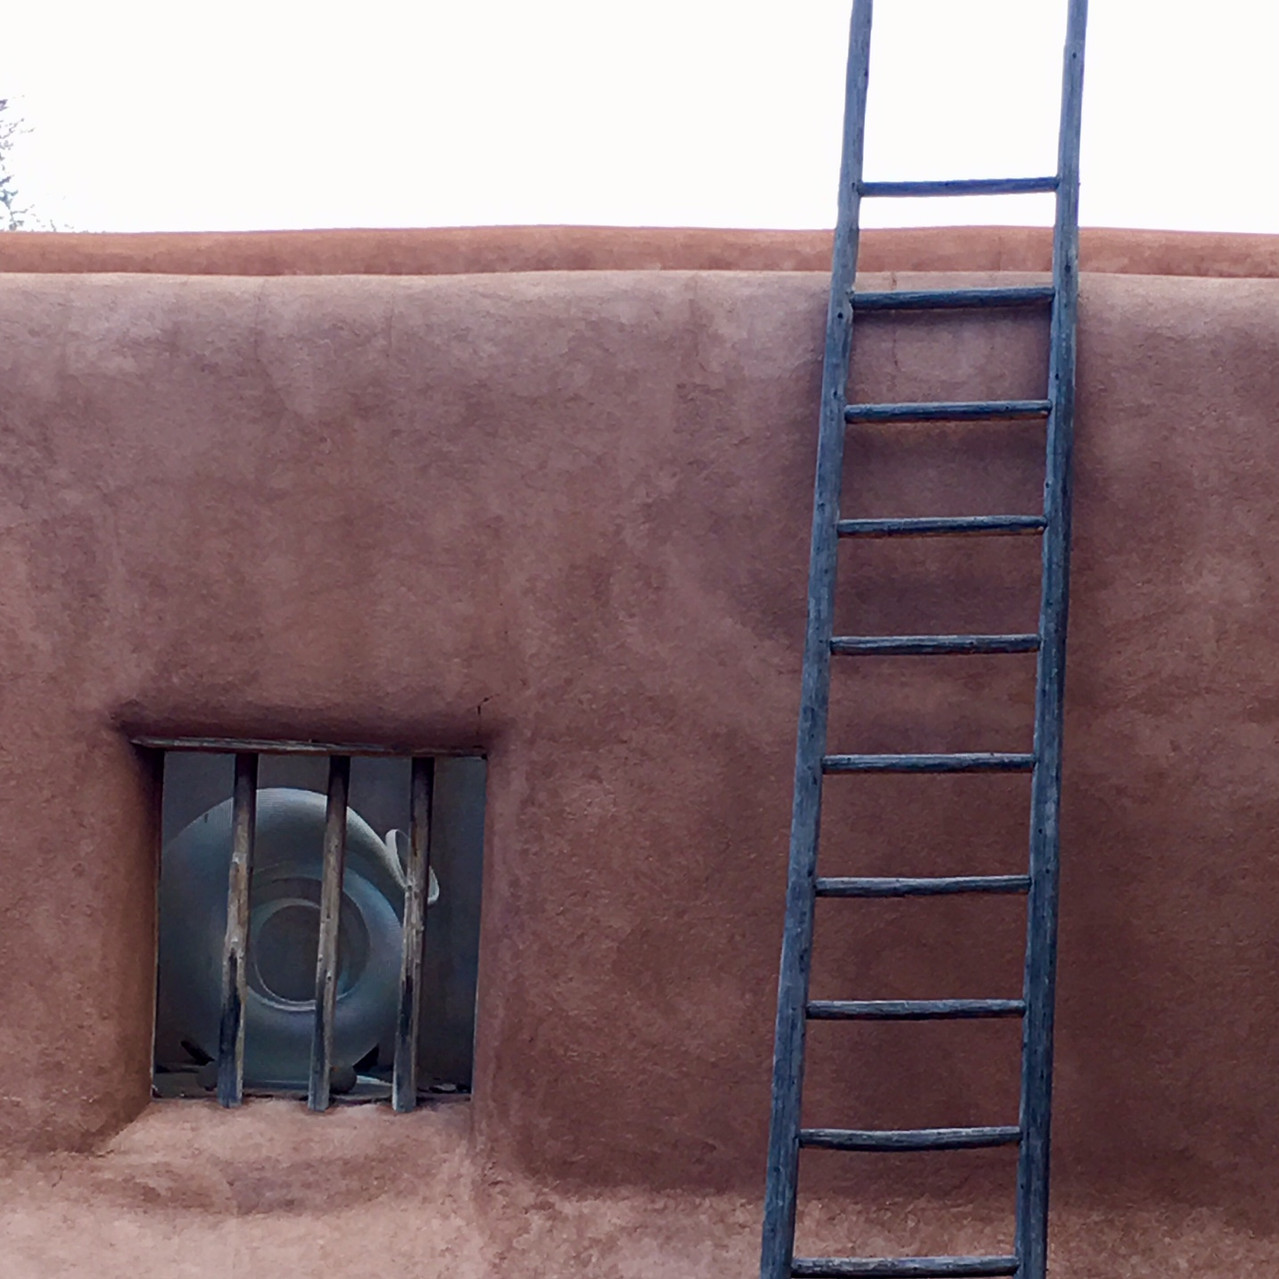 Ladders are a necessity when you have an adobe house!